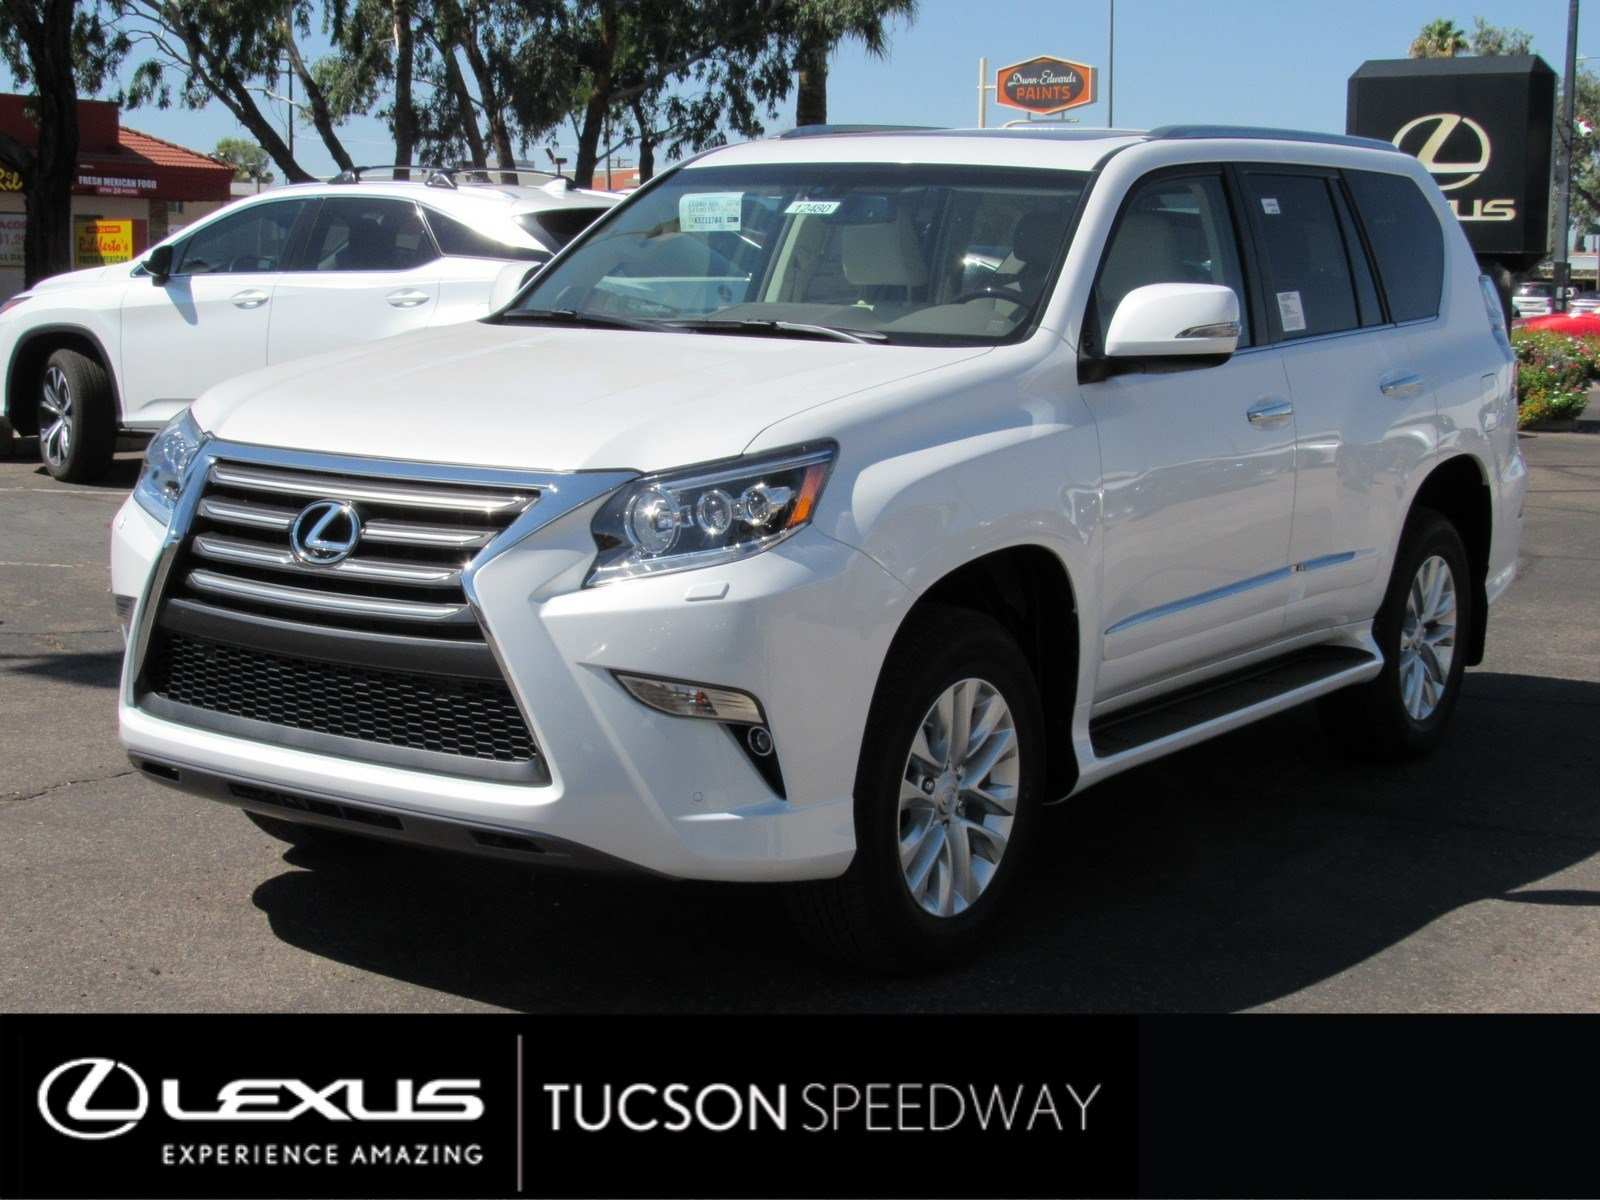 13 New 2019 Lexus Gx 460 Release Date Performance and New Engine for 2019 Lexus Gx 460 Release Date